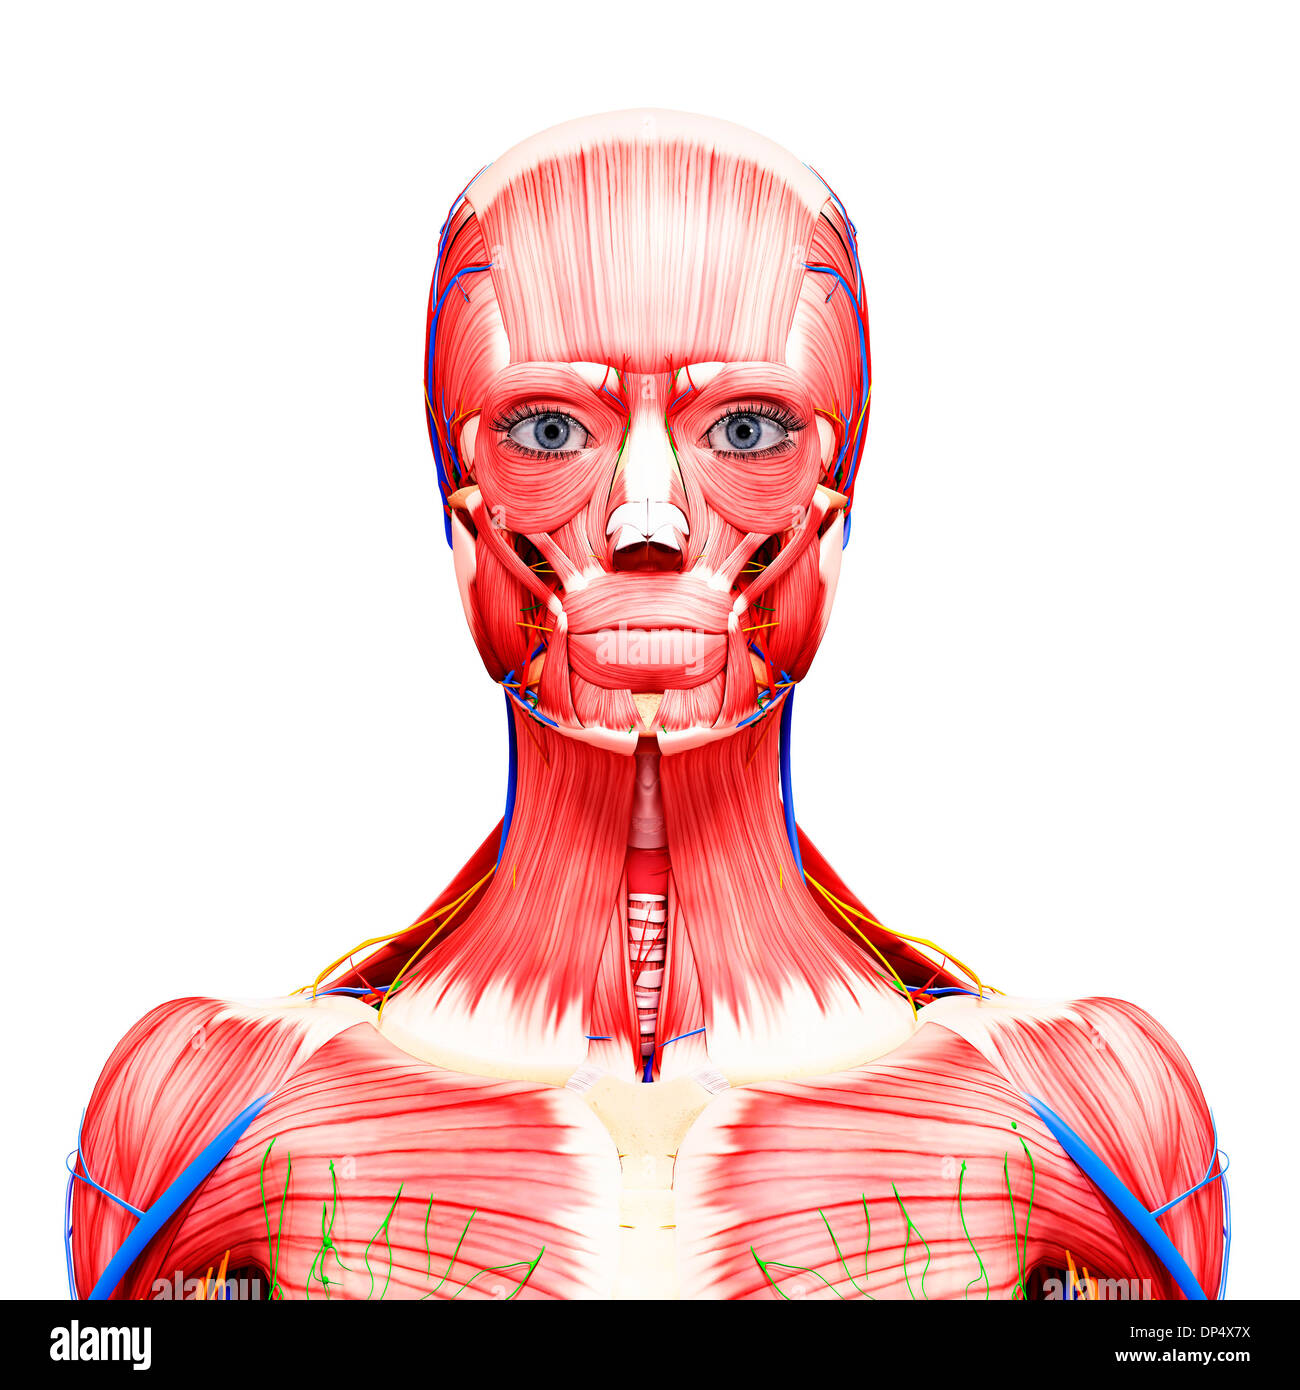 Occipitofrontalis Muscle Stockfotos & Occipitofrontalis Muscle ...